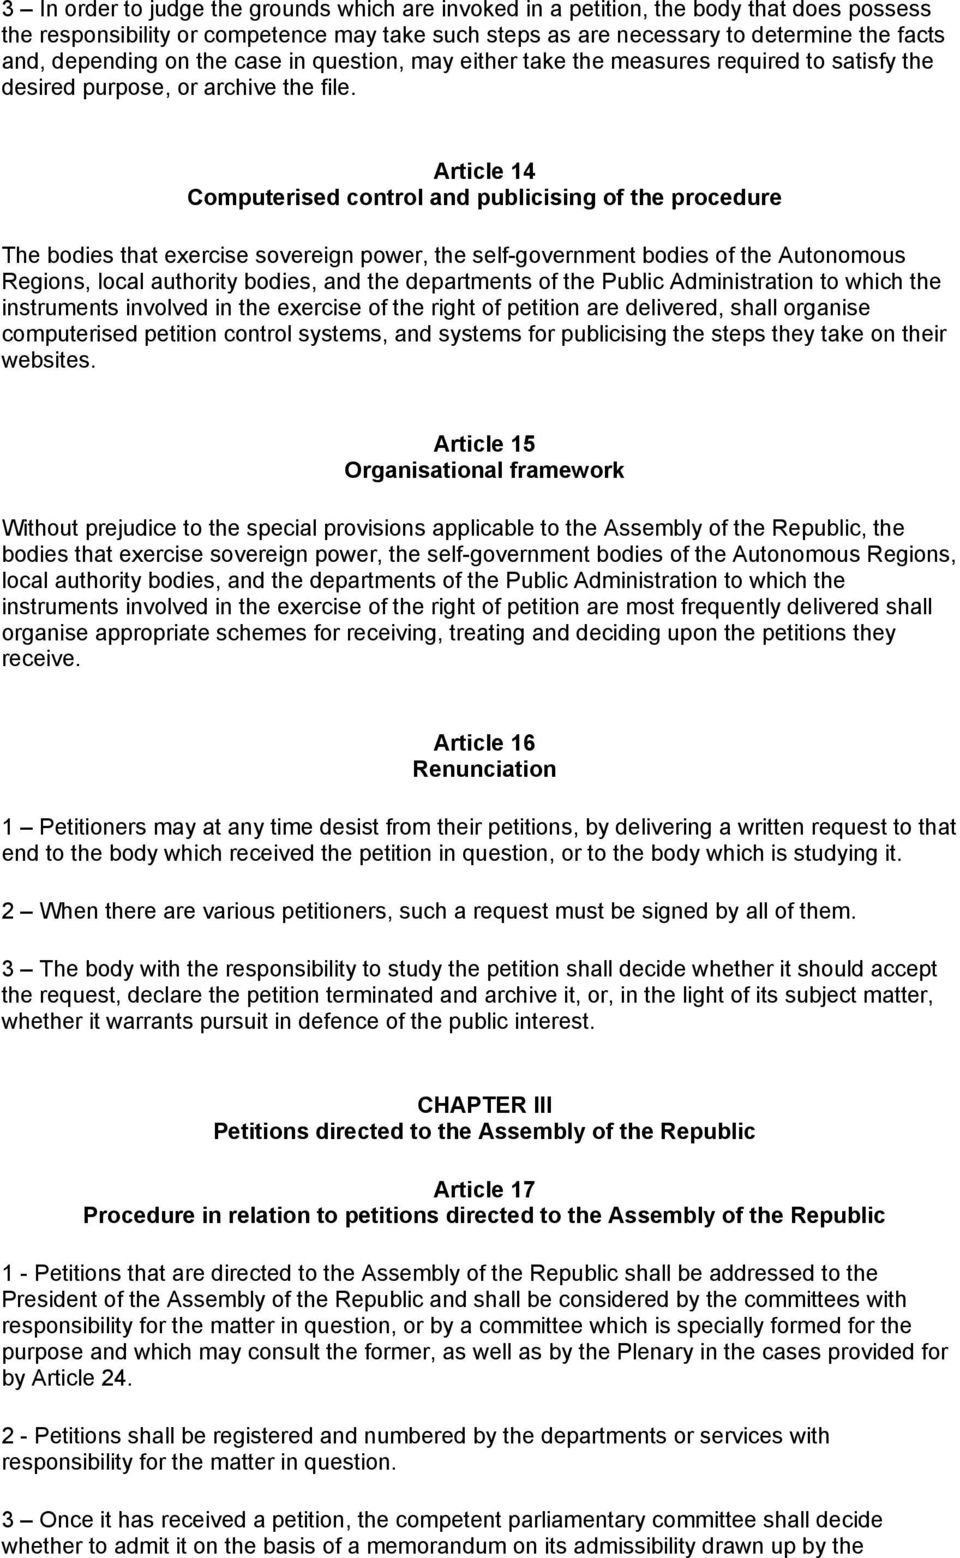 Article 14 Computerised control and publicising of the procedure The bodies that exercise sovereign power, the self-government bodies of the Autonomous Regions, local authority bodies, and the